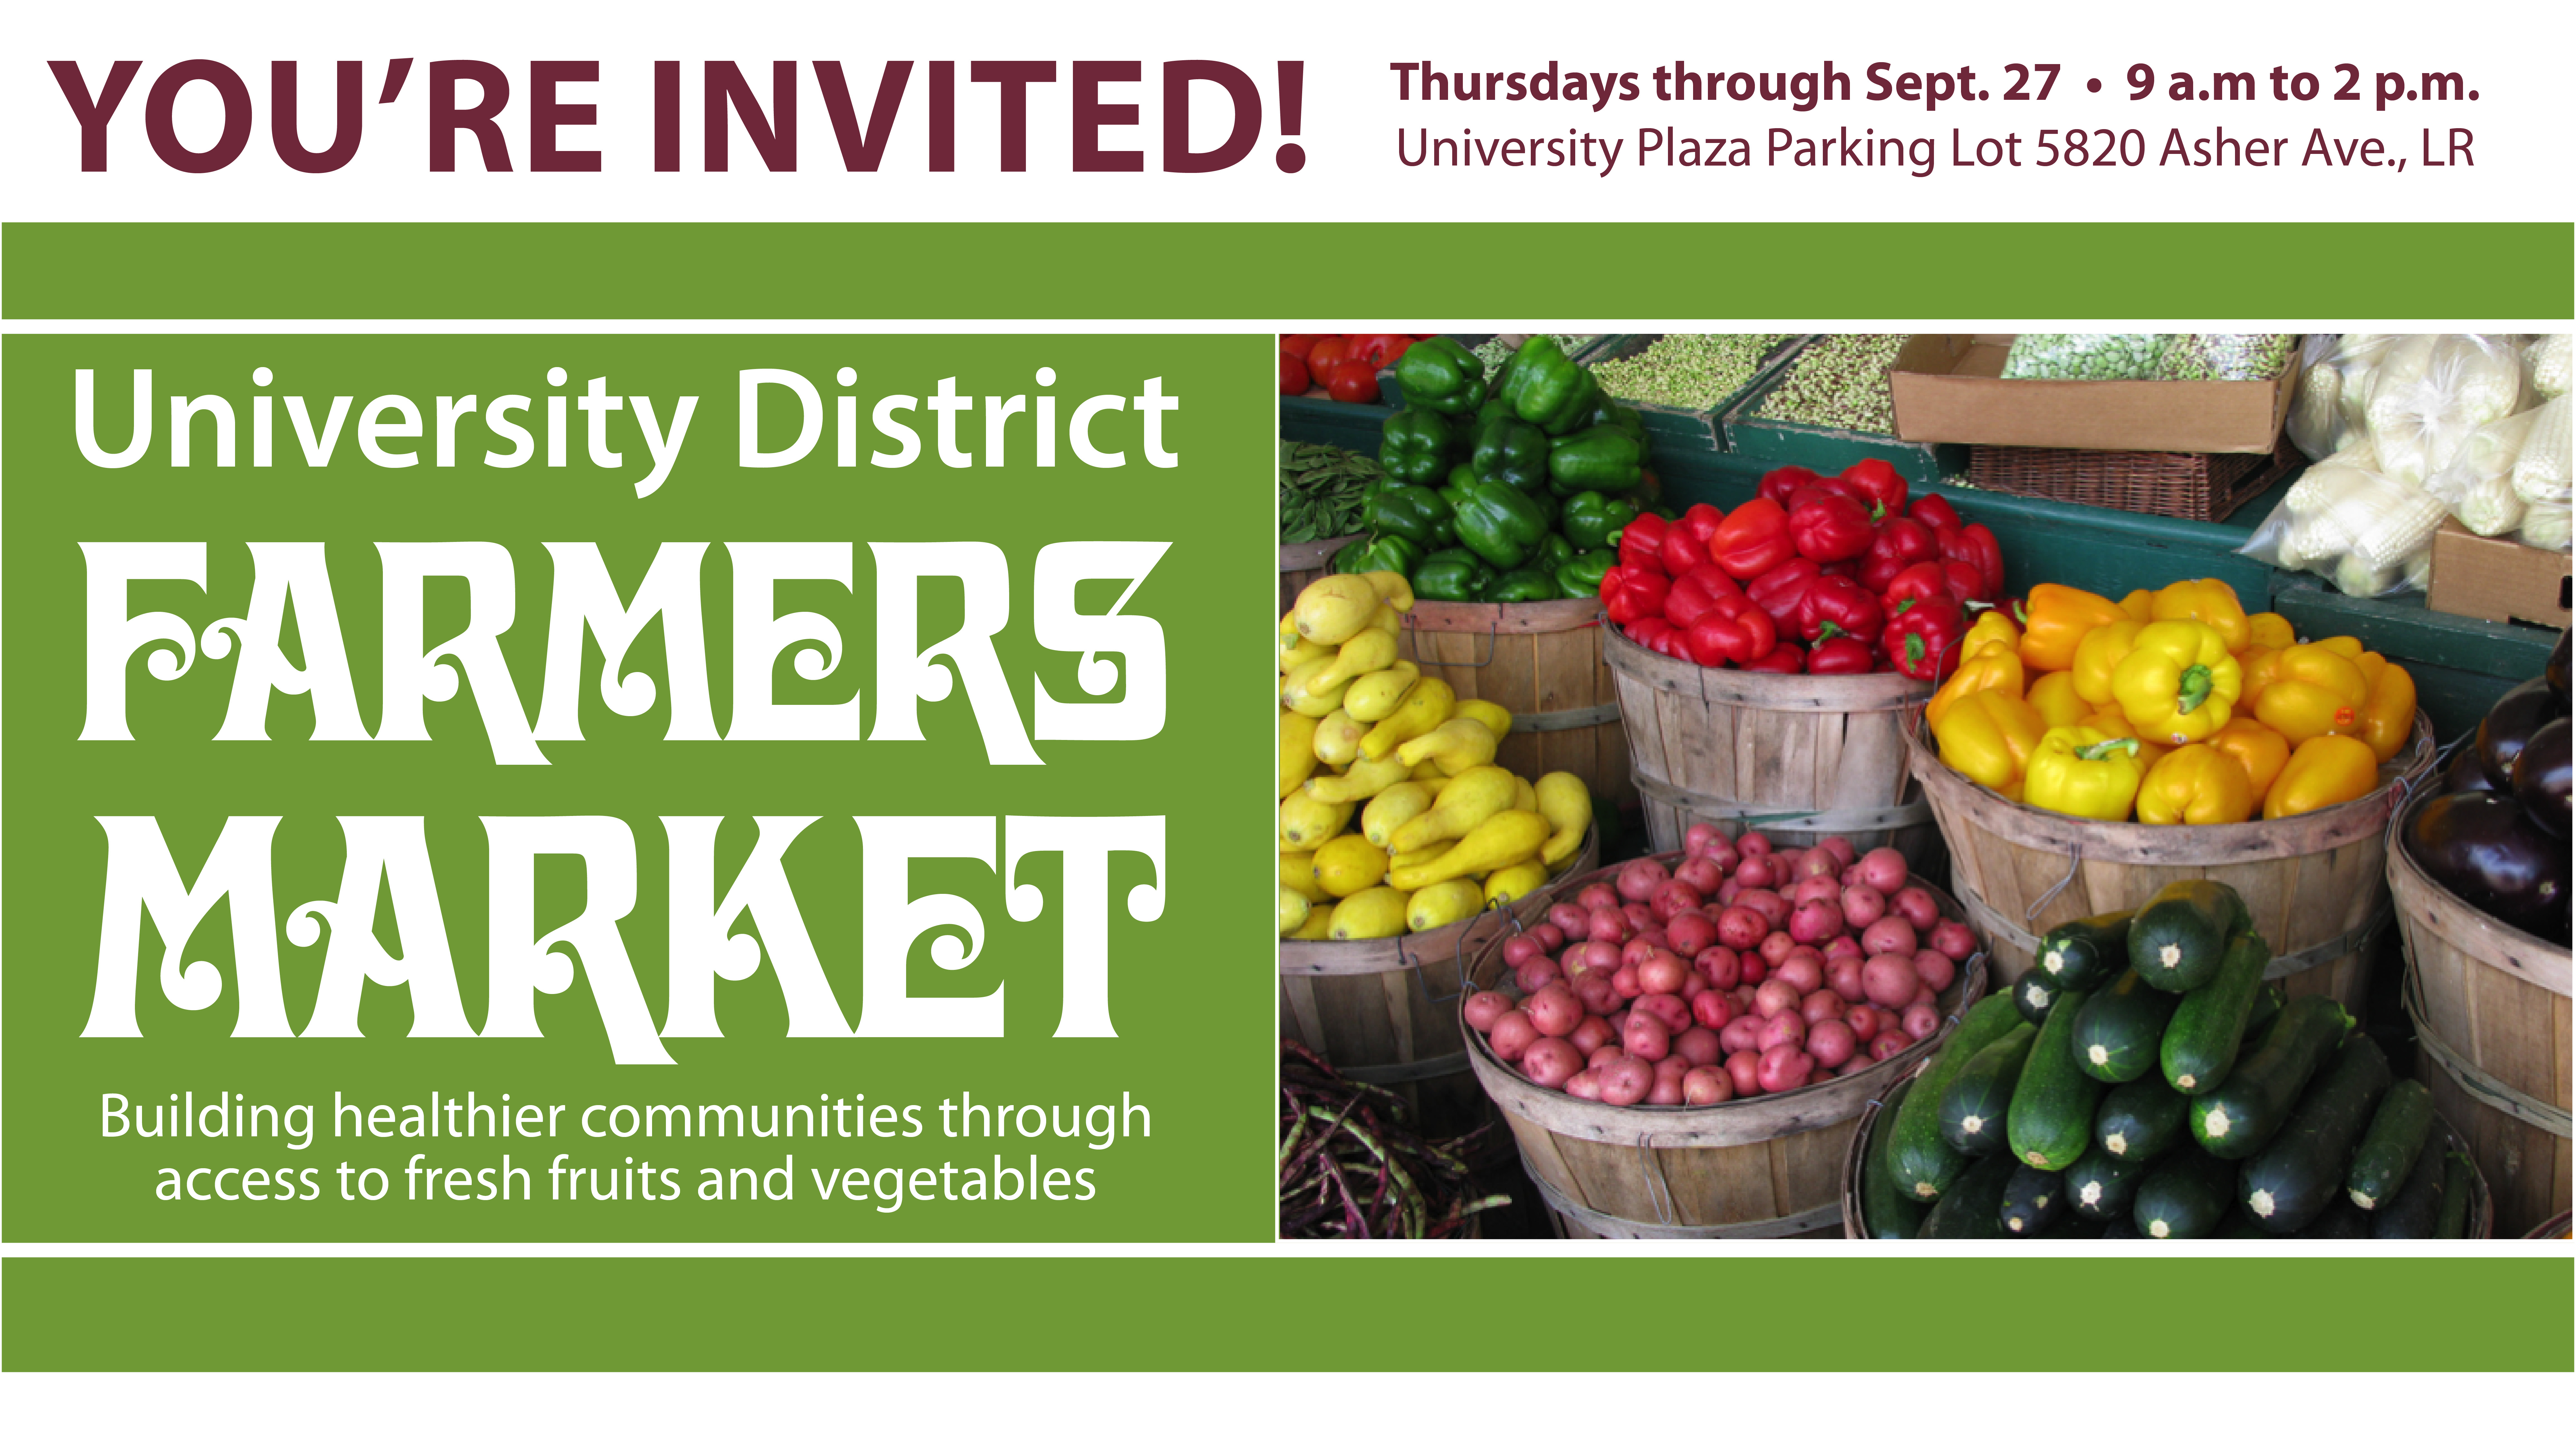 The farmers markets will be held from 9 a.m. to 2 p.m. every Thursday from May 10 to Sept. 27 in the University of Arkansas at Little Rock University Plaza Parking Lot at 5820 Asher Ave.